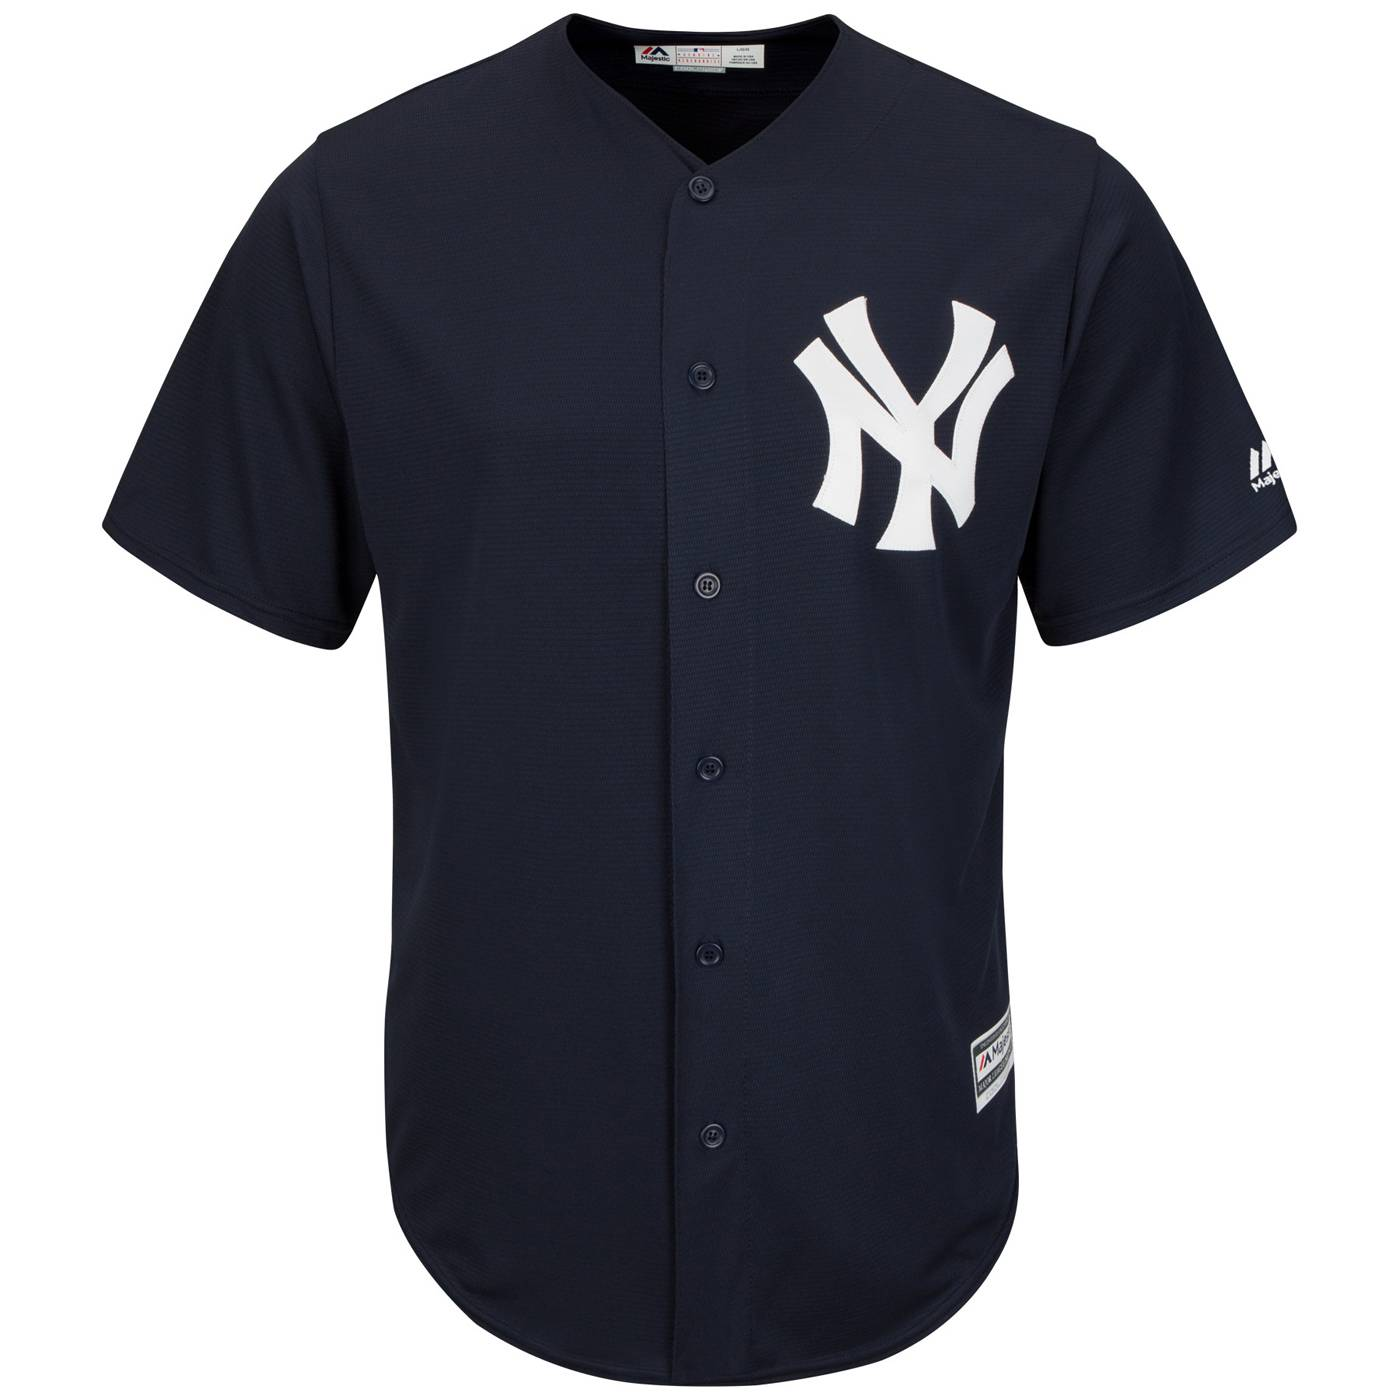 Outlet New Jersey >> New York Yankees Brett Gardner Replica Alternate Home Baseball Jersey